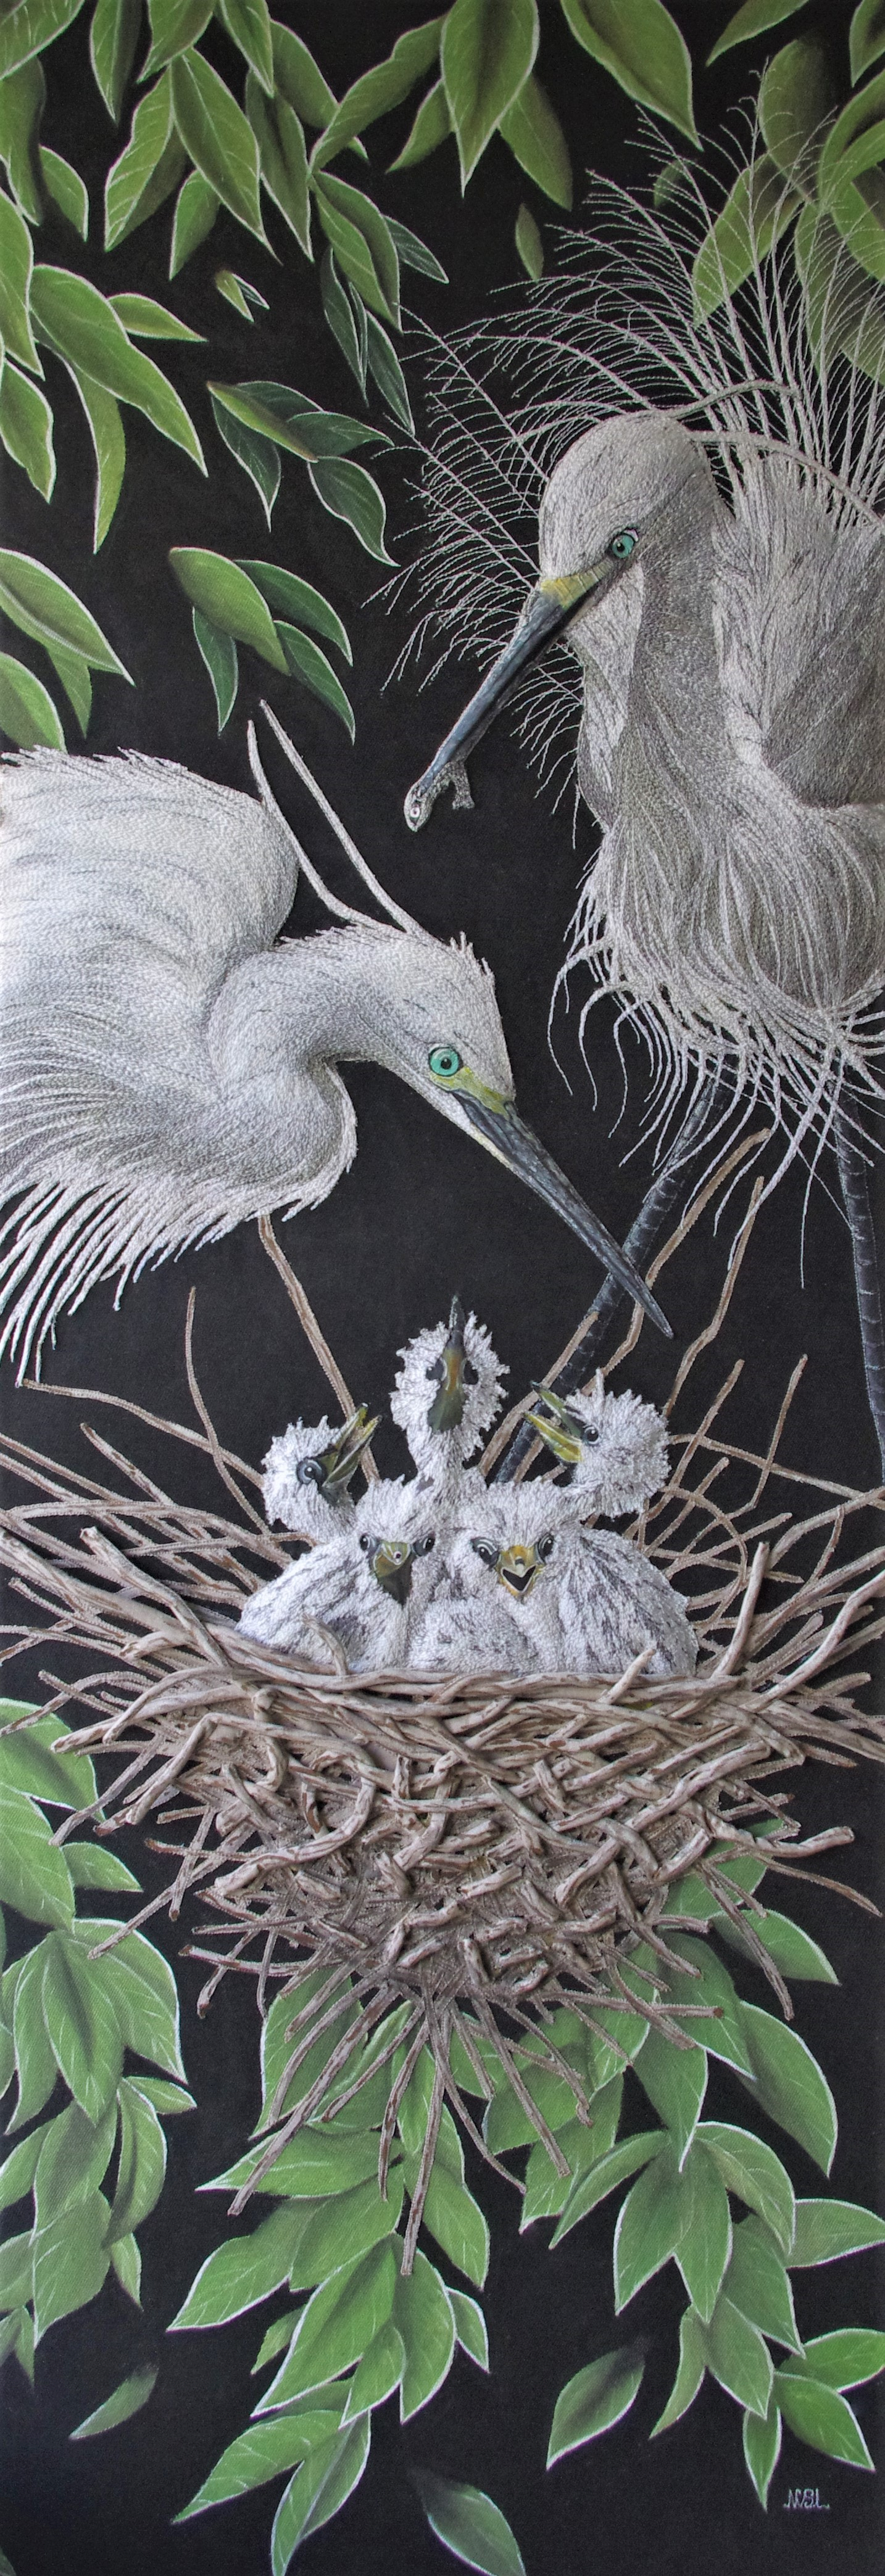 Hungry Little Egrets SOLD